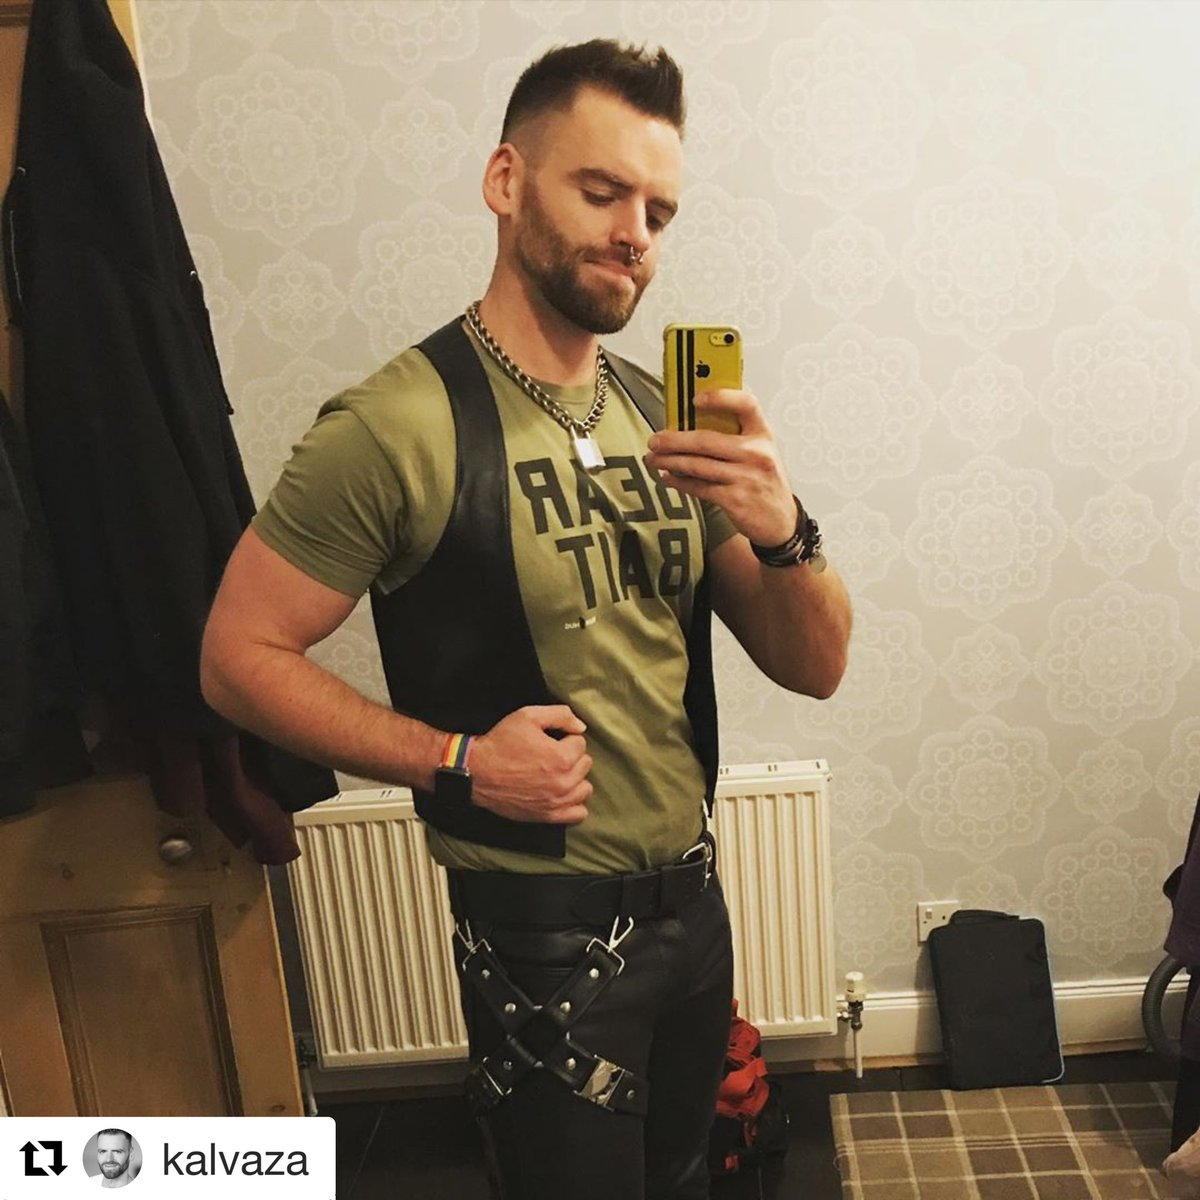 Chris is rocking that leg harness!  ・・・ By popular demand it's the bear bait tshirt with leather tonight.  Also how cute is my new leg harness from @gildedfetish  #leatherman #gear365 #guysngear pic.twitter.com/7A7A4DldVD